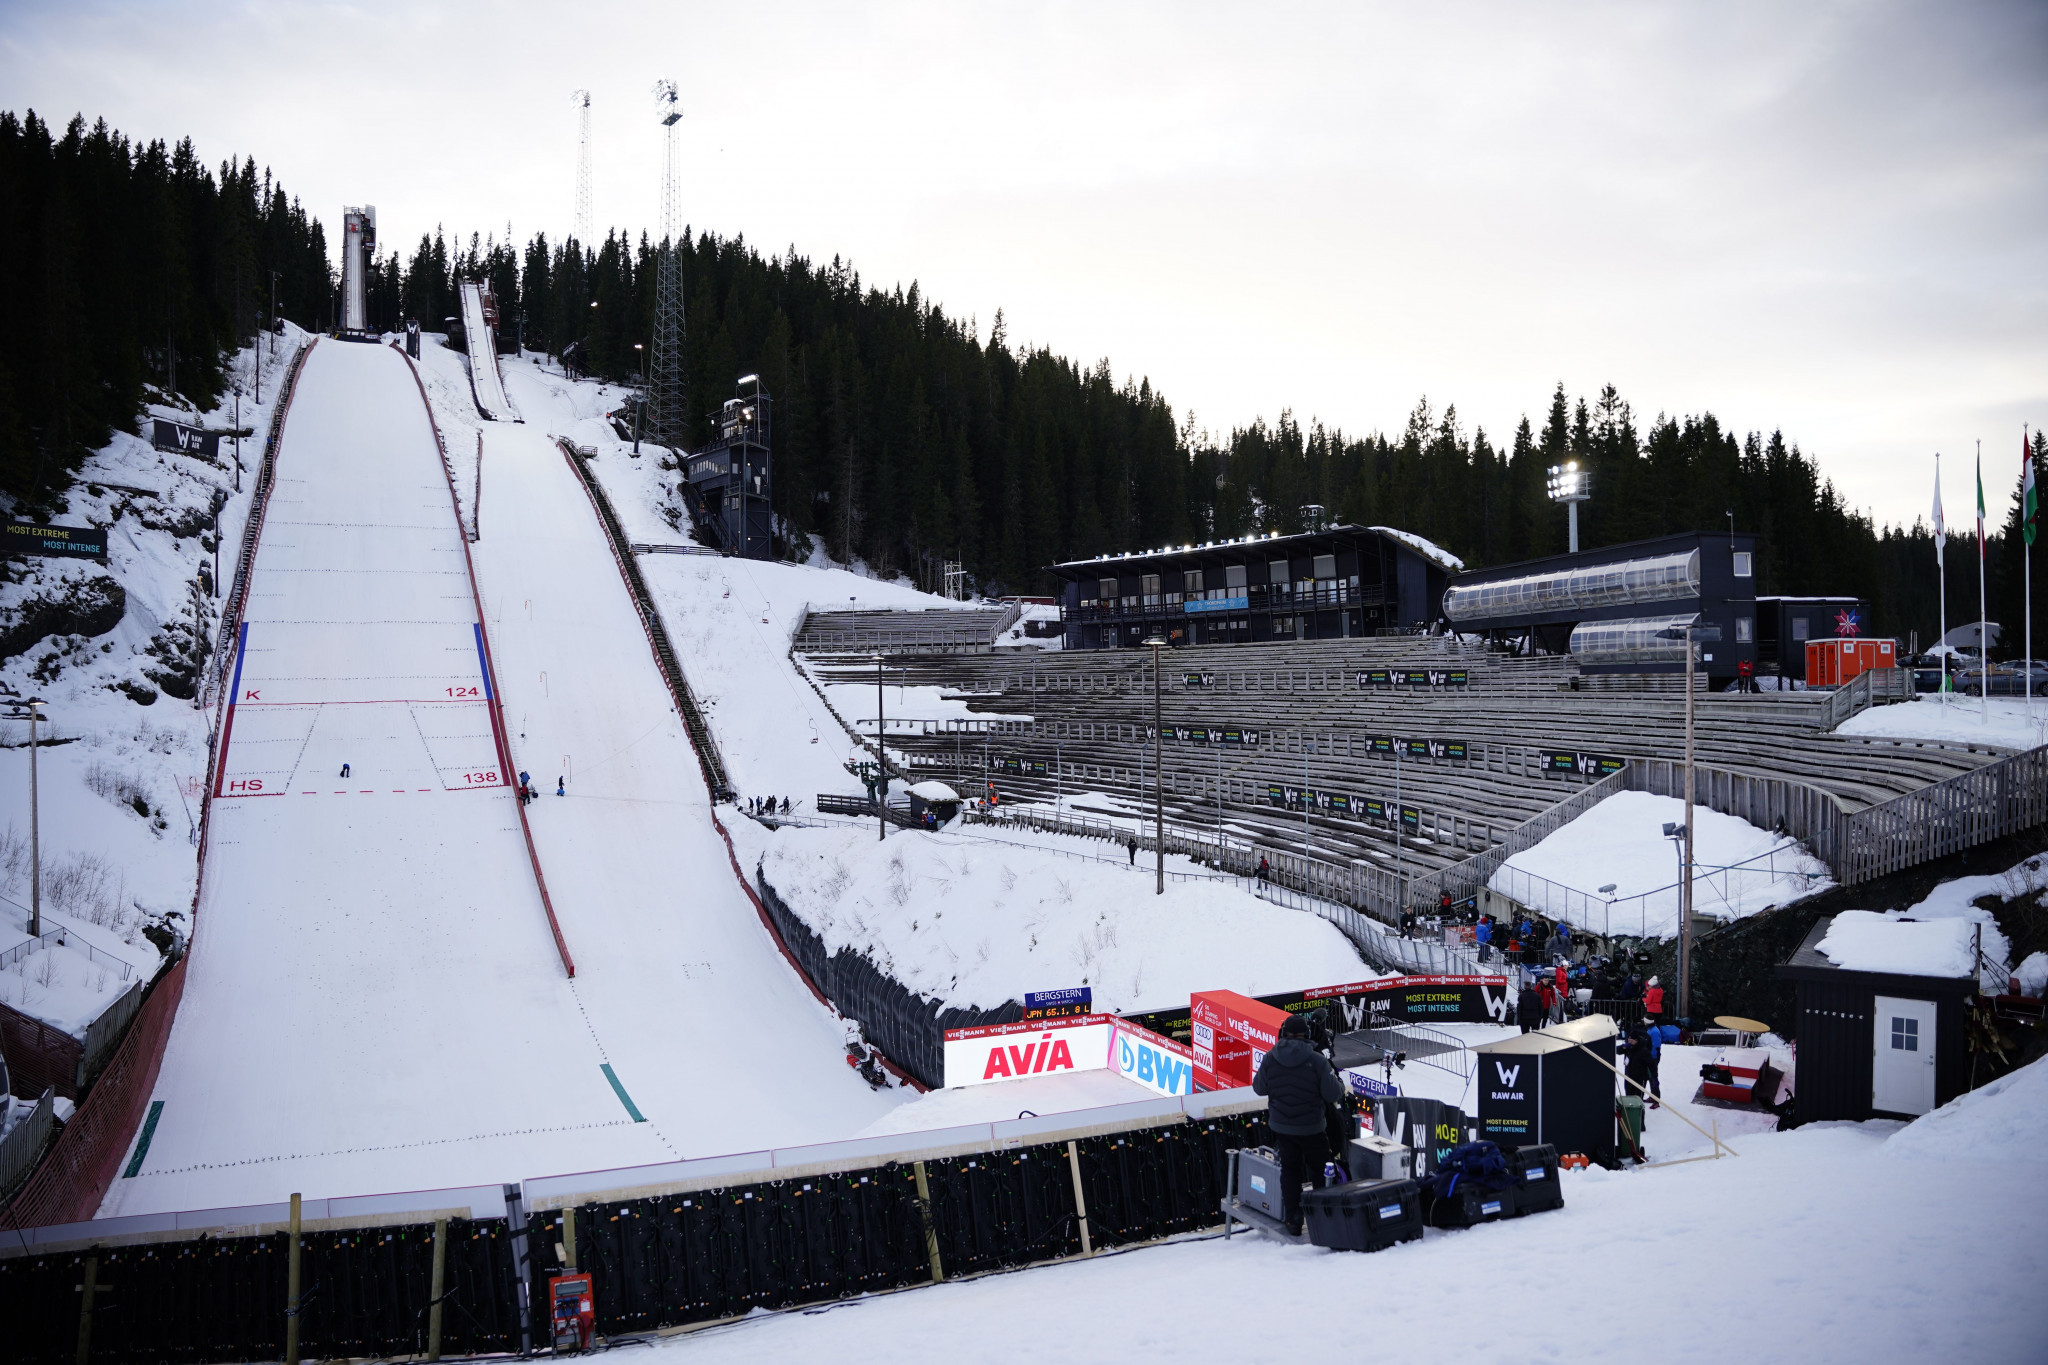 FIS hold meetings with 2025 World Championship organisers Trondheim and Saalbach